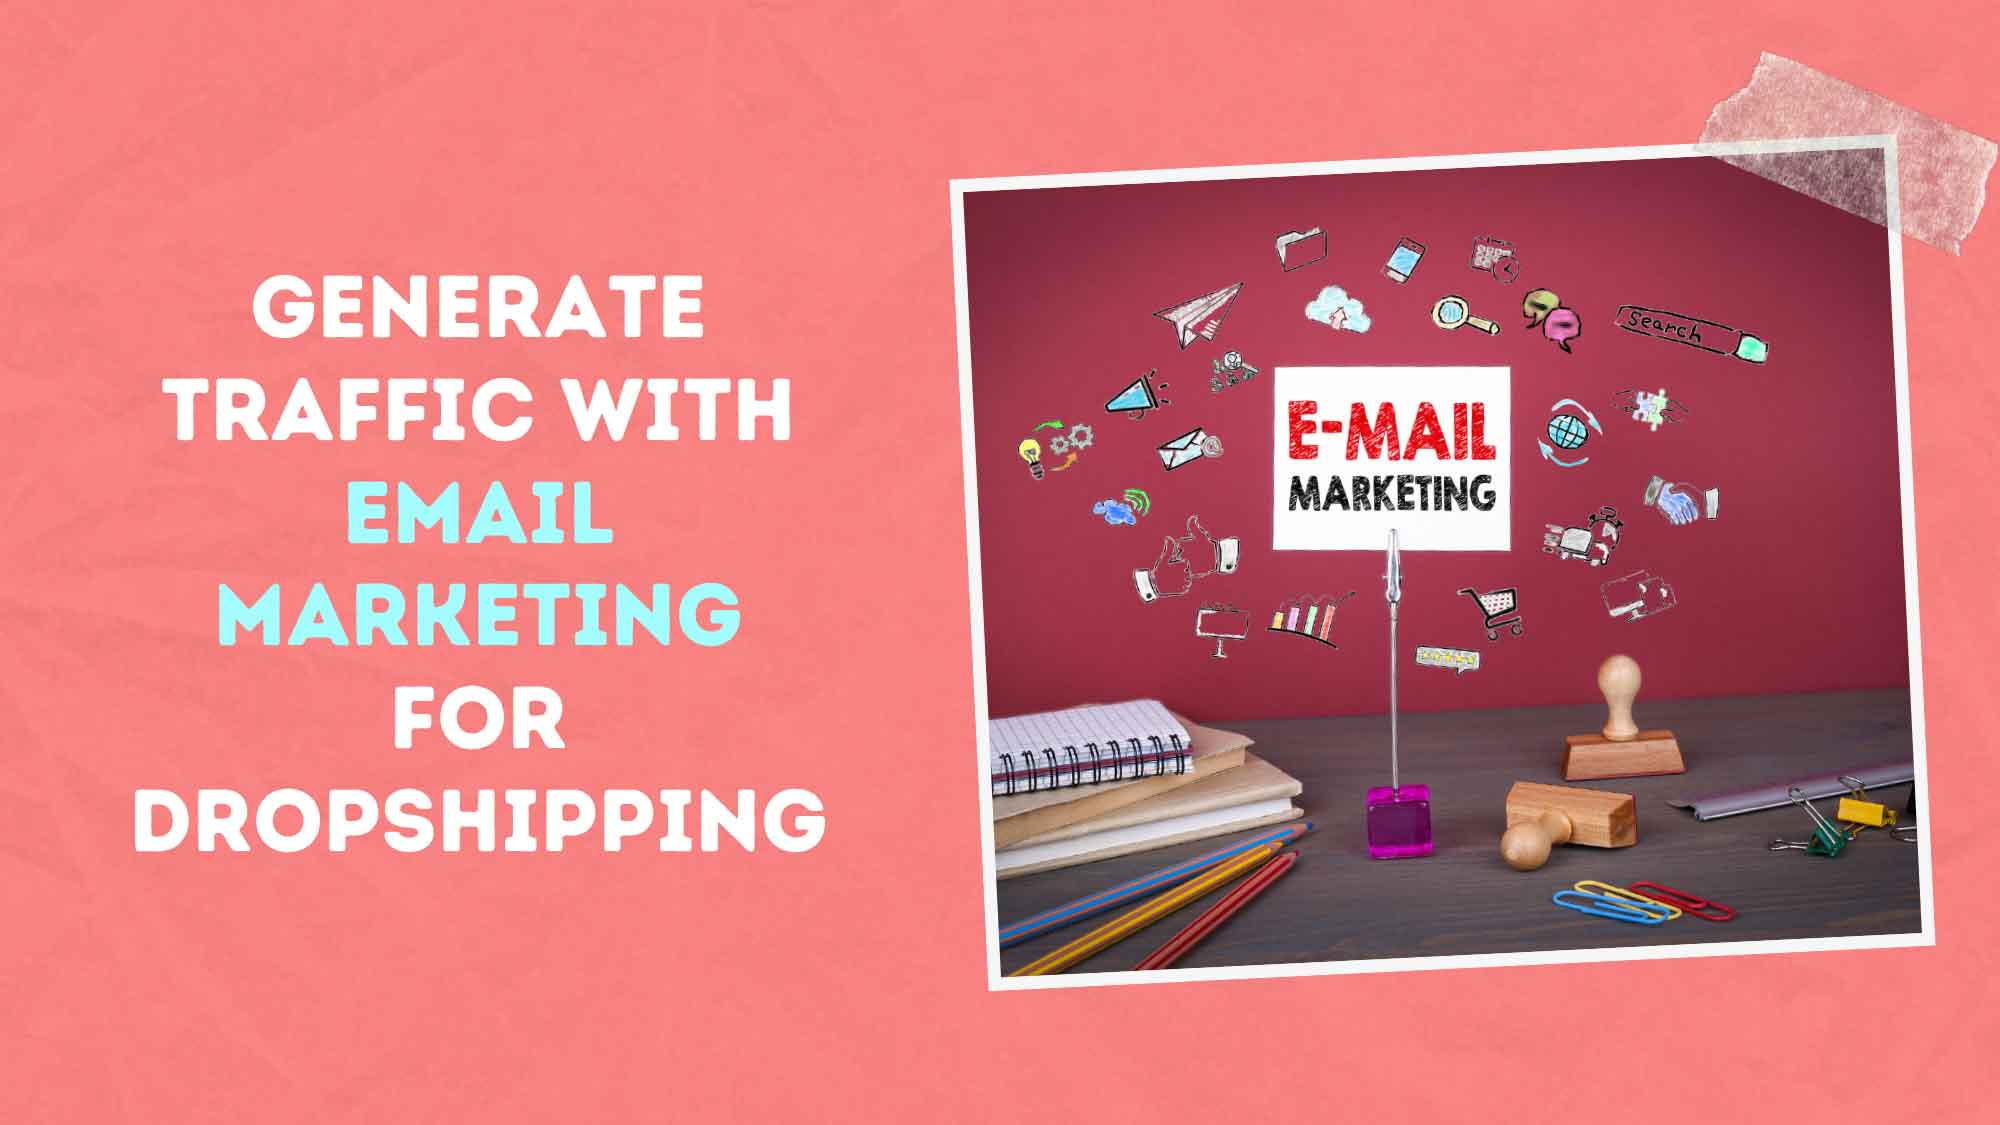 How You Can Generate Traffic With Email Marketing For Dropshipping